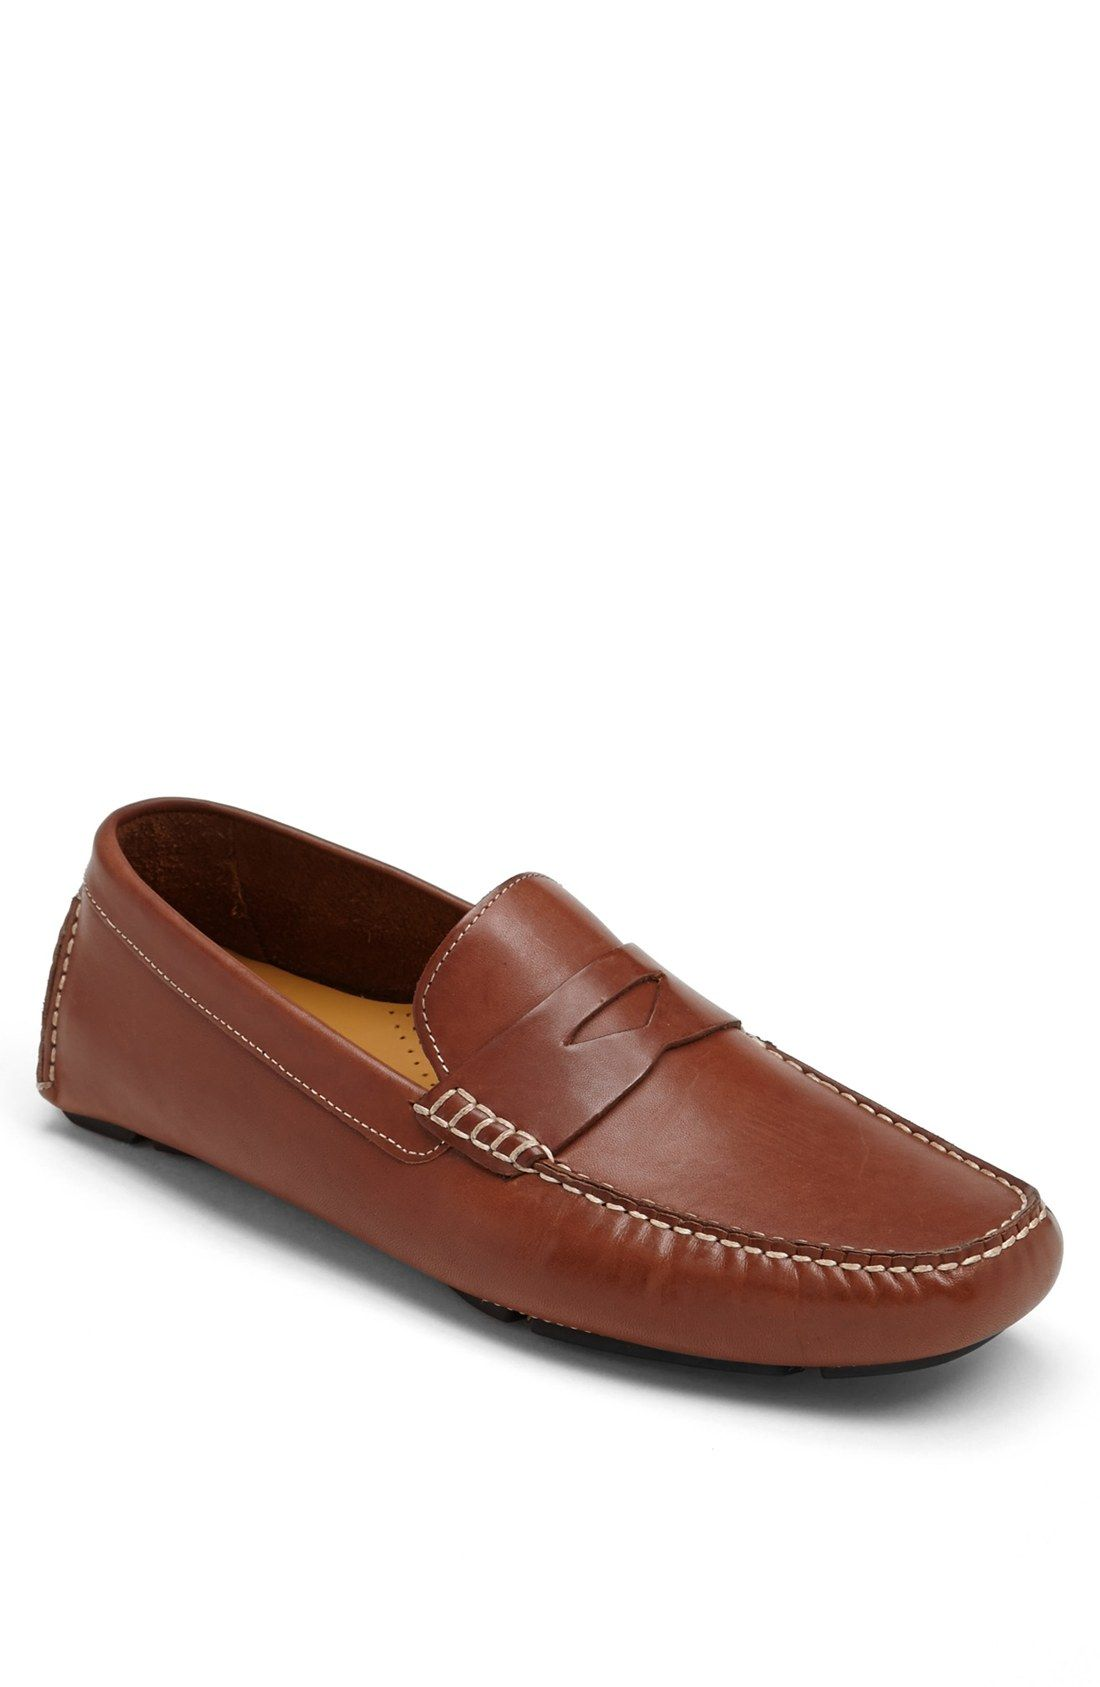 Hommes Cole Haan Pinch Friday Penny Chaussures Loafer 9zI5x2